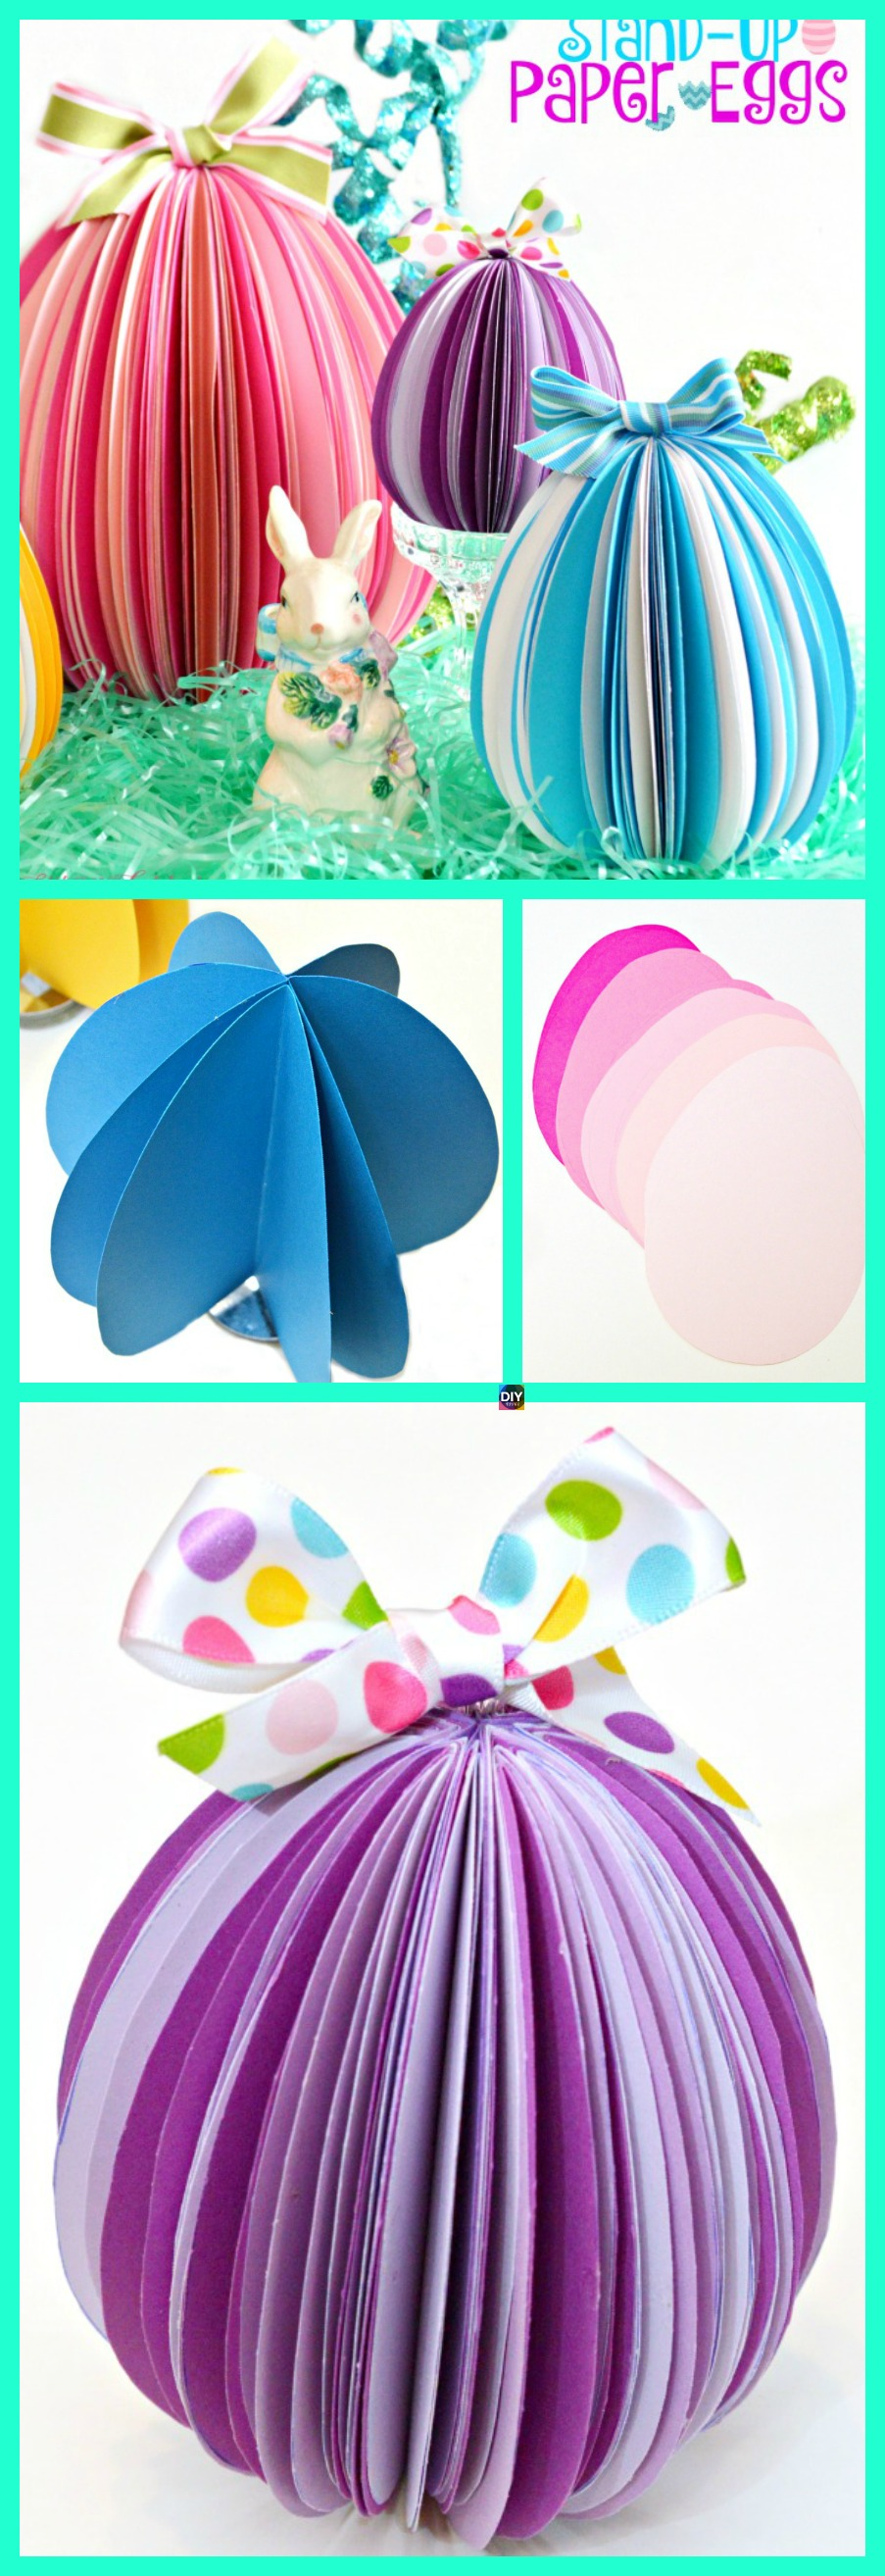 diy4ever- DIY Easter Paper Eggs Step by Step Tutorial